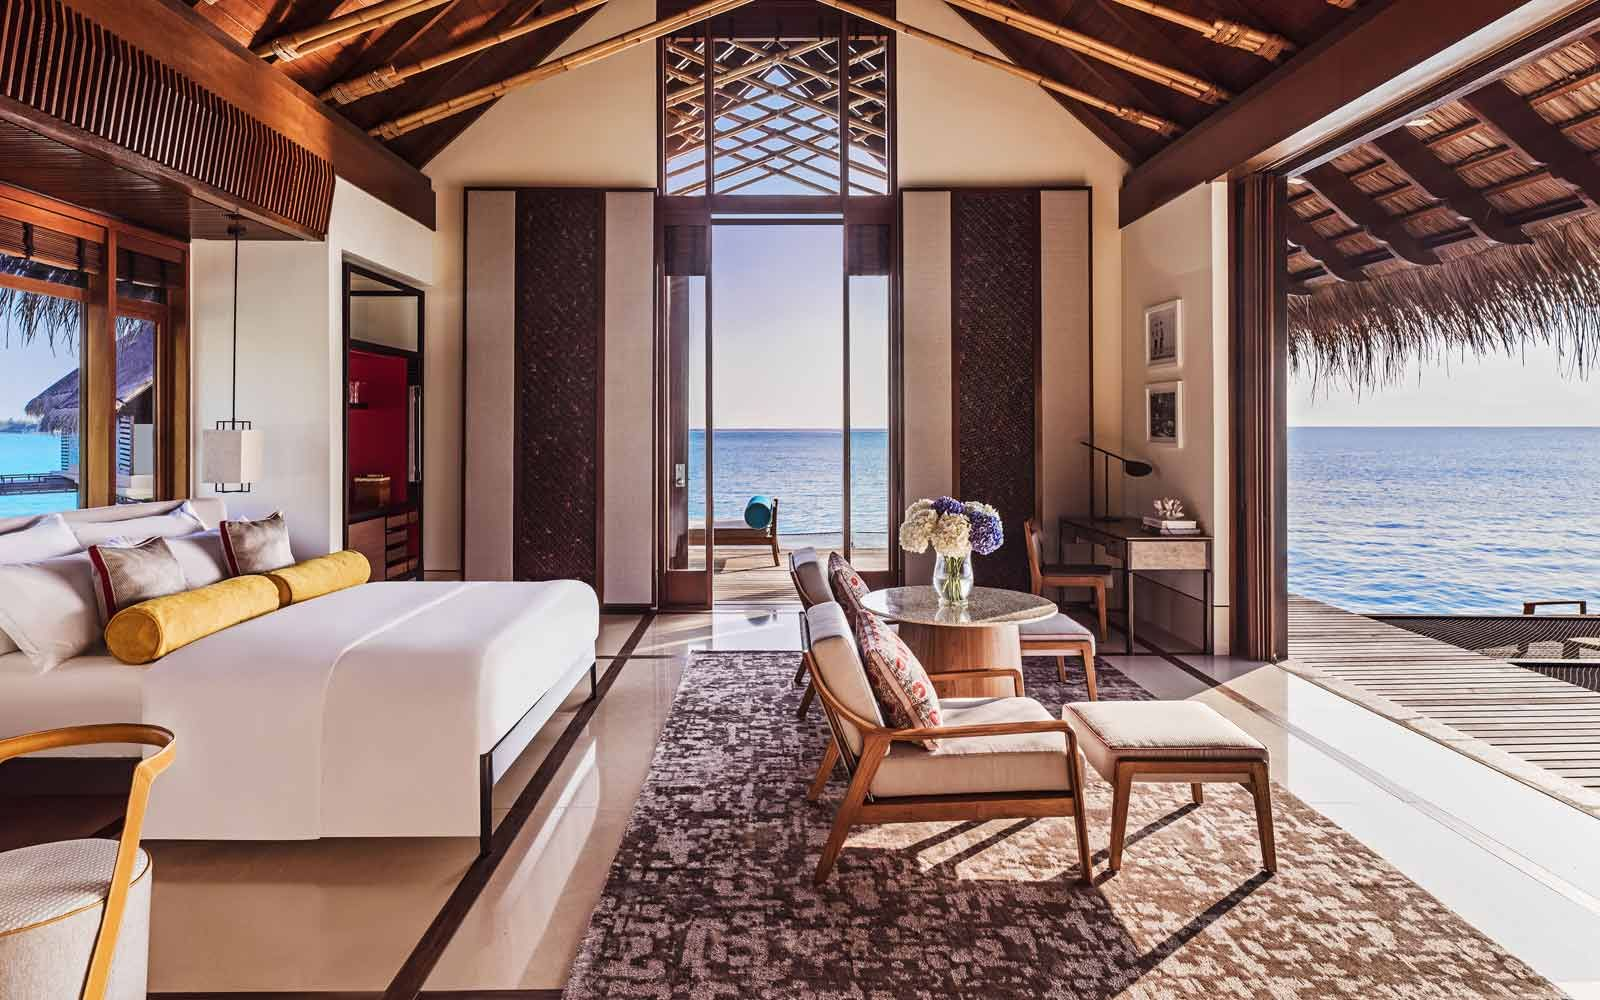 Water Villas at One&Only Cabos feature a beautiful